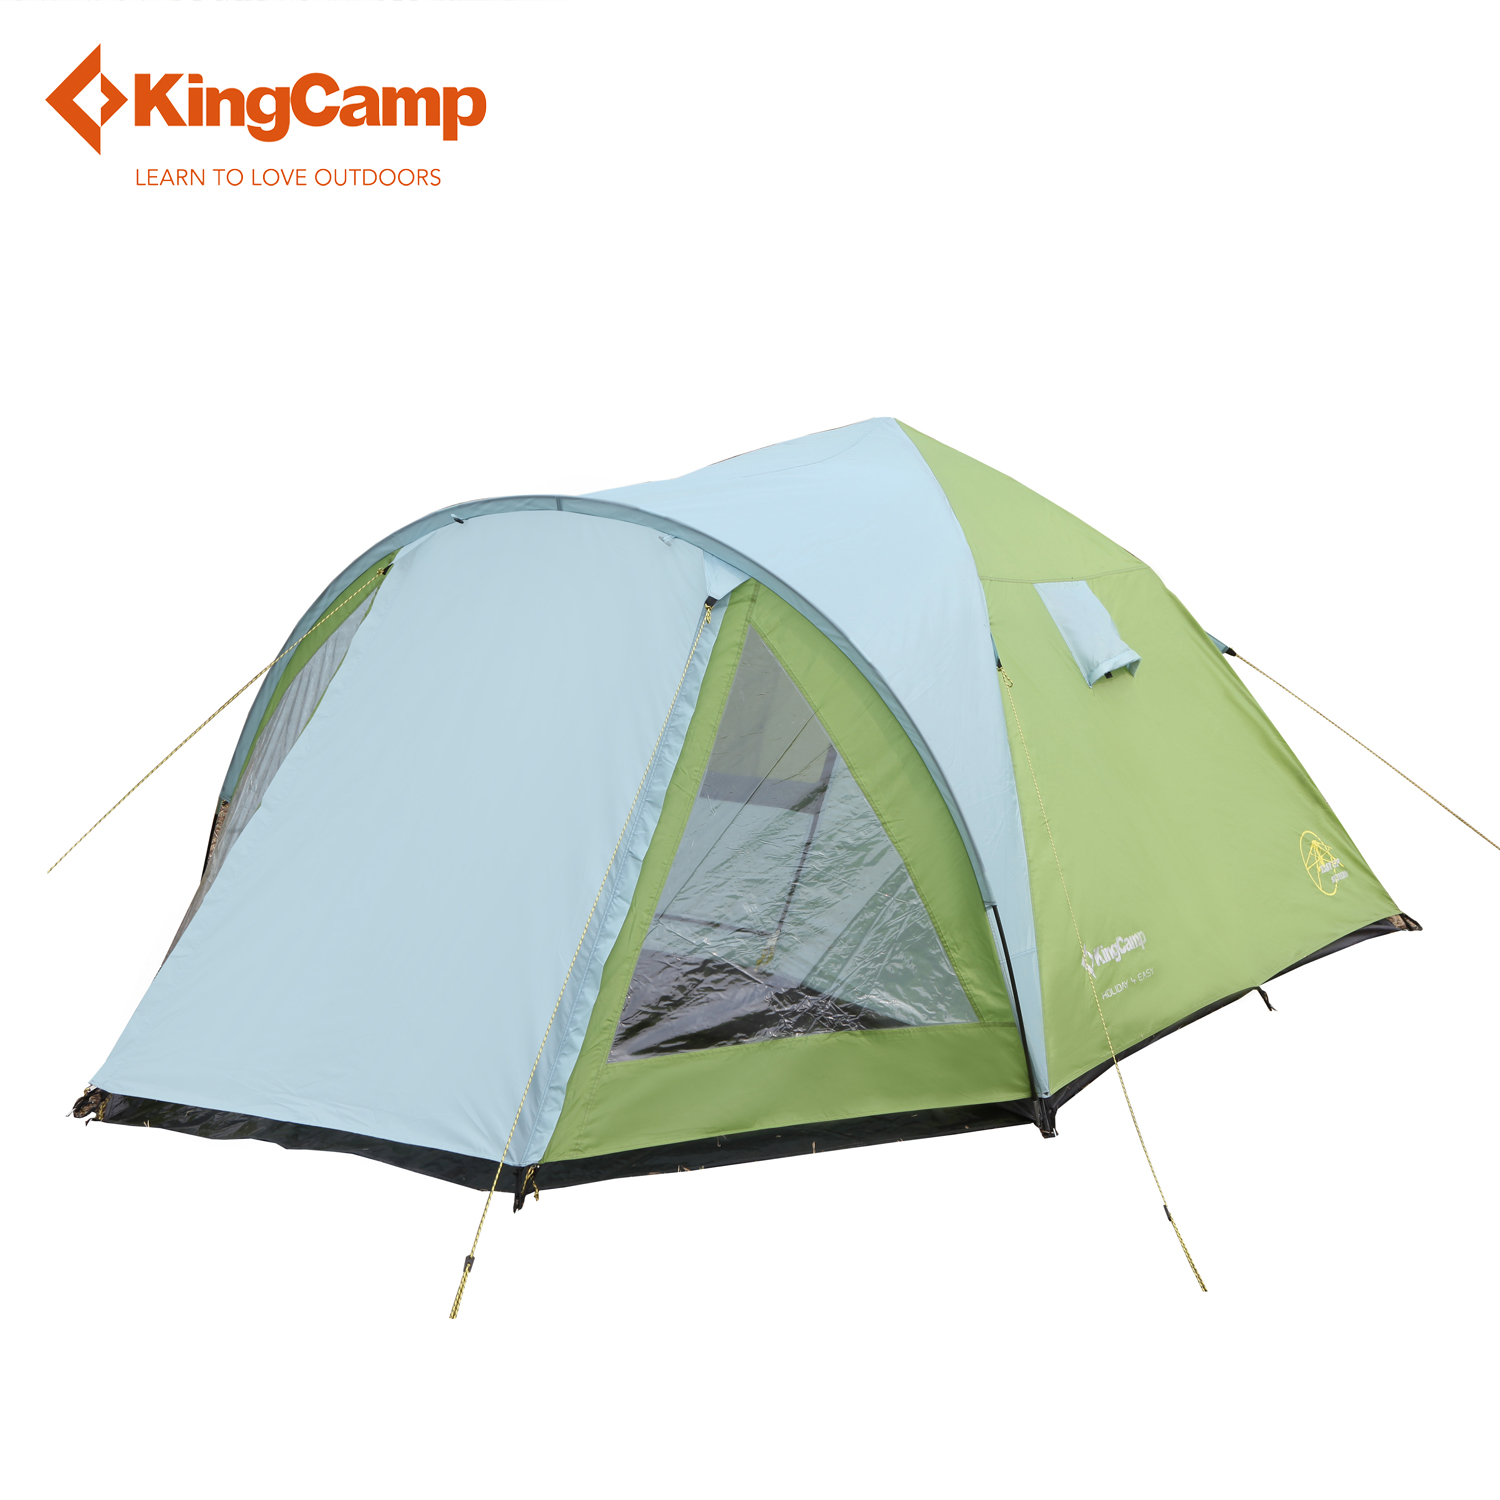 KingCamp Double-layers Camping Tent with Screen Room 4 Person 3-Season Waterproof Windyproof Pop-up Tent for Family Holiday